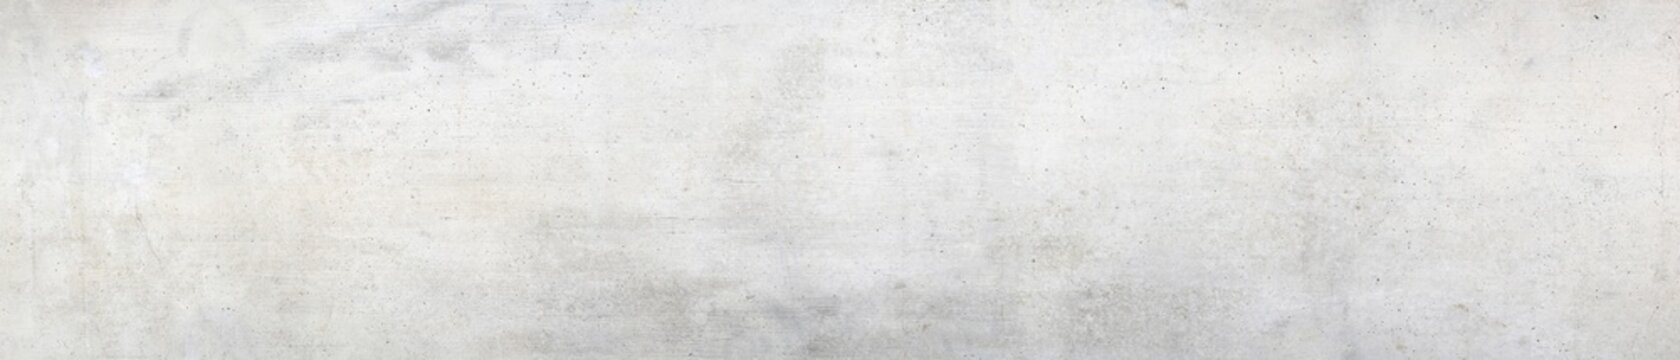 Texture of a white concrete wall as a background